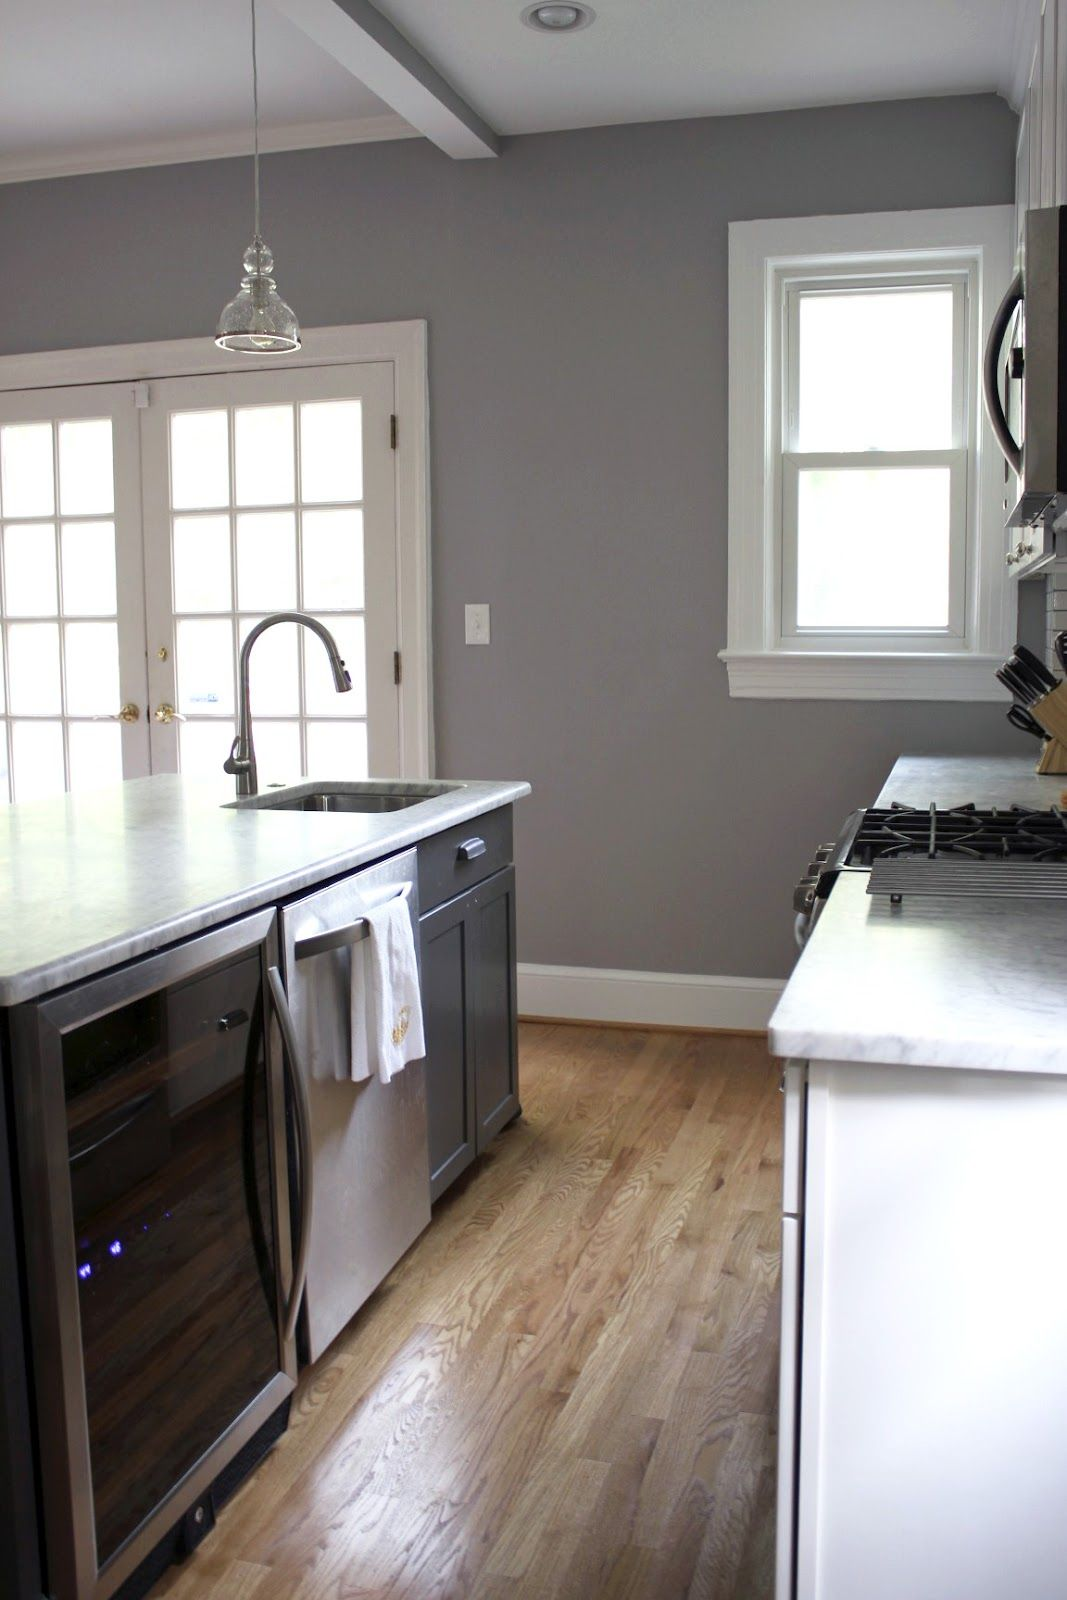 Grey Painted Kitchen Walls Behr Porpoise I Love The Gray Walls With The Wood Floors